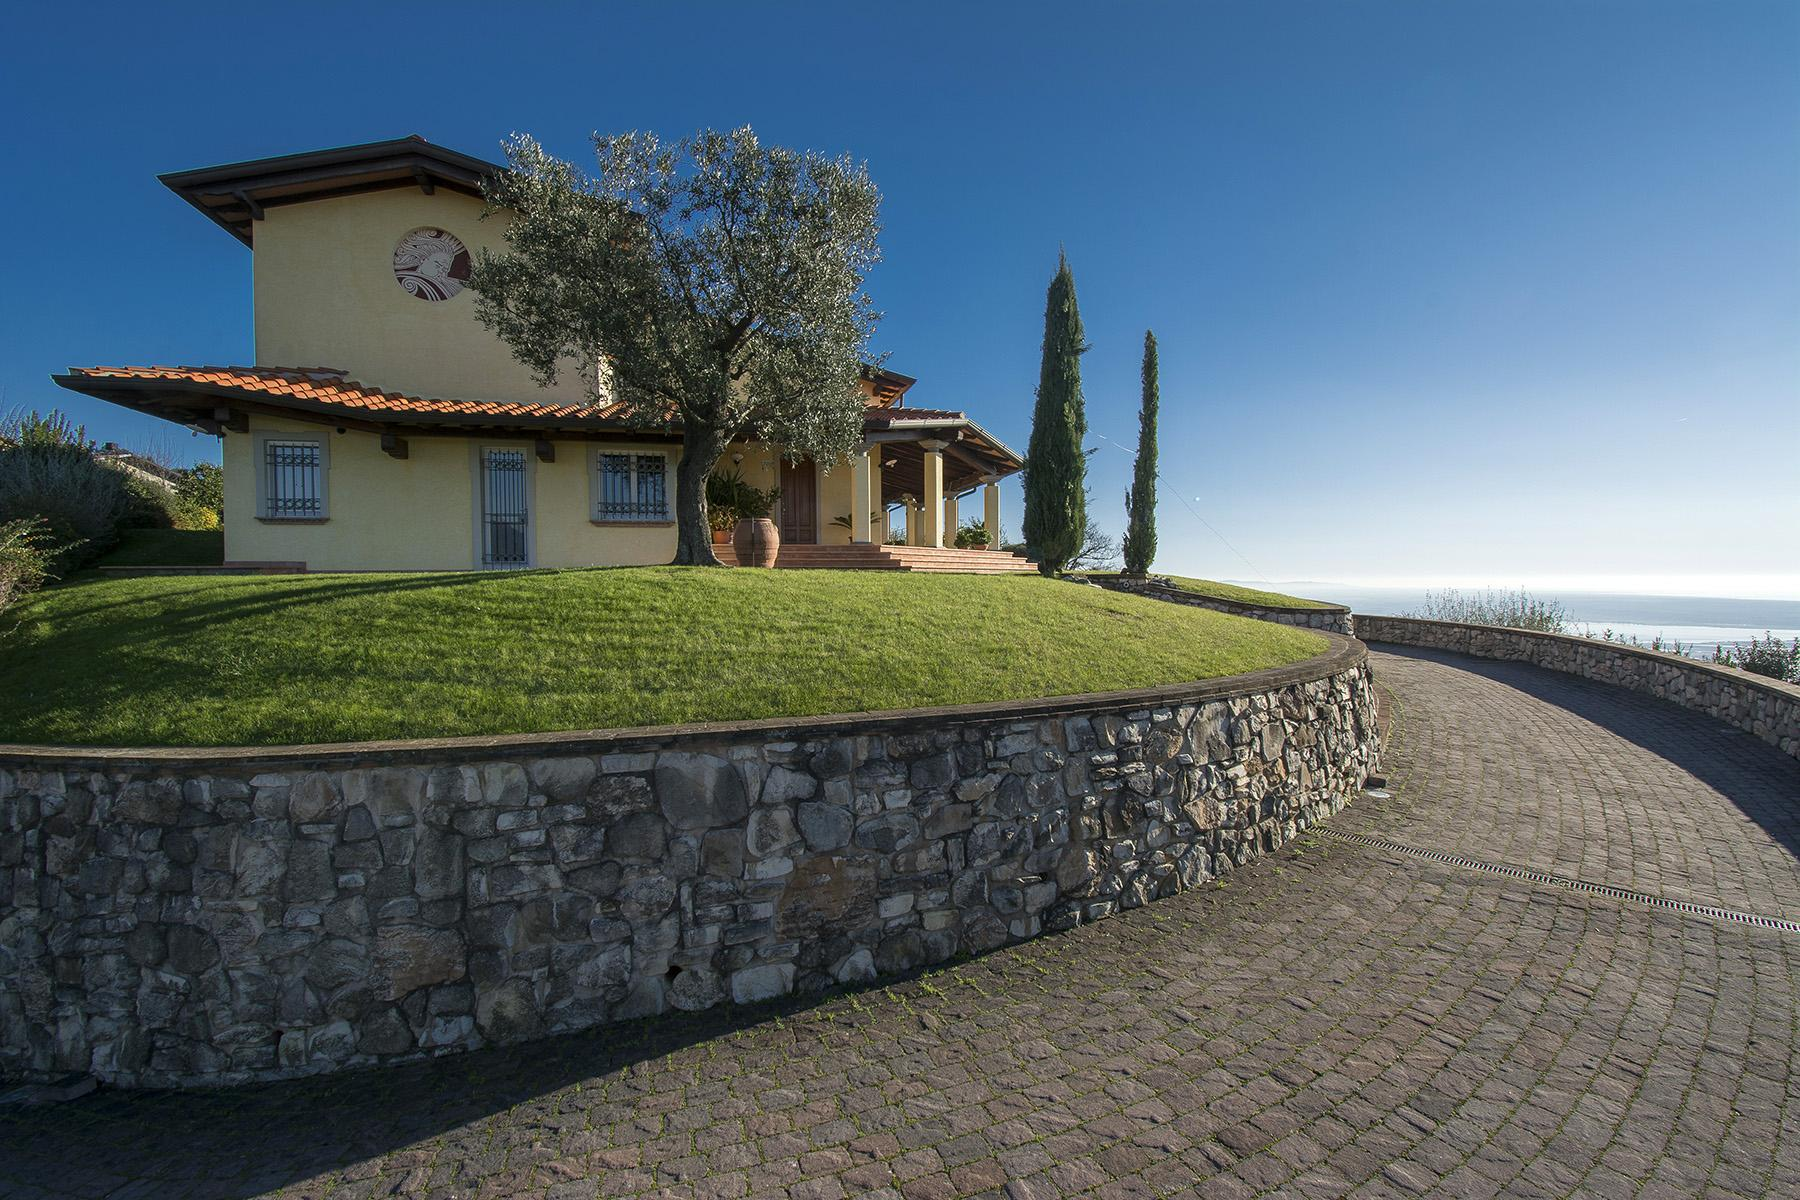 Hilltop sea-view villa overlooking the Versilia coastline and lake Massaciuccoli - 5